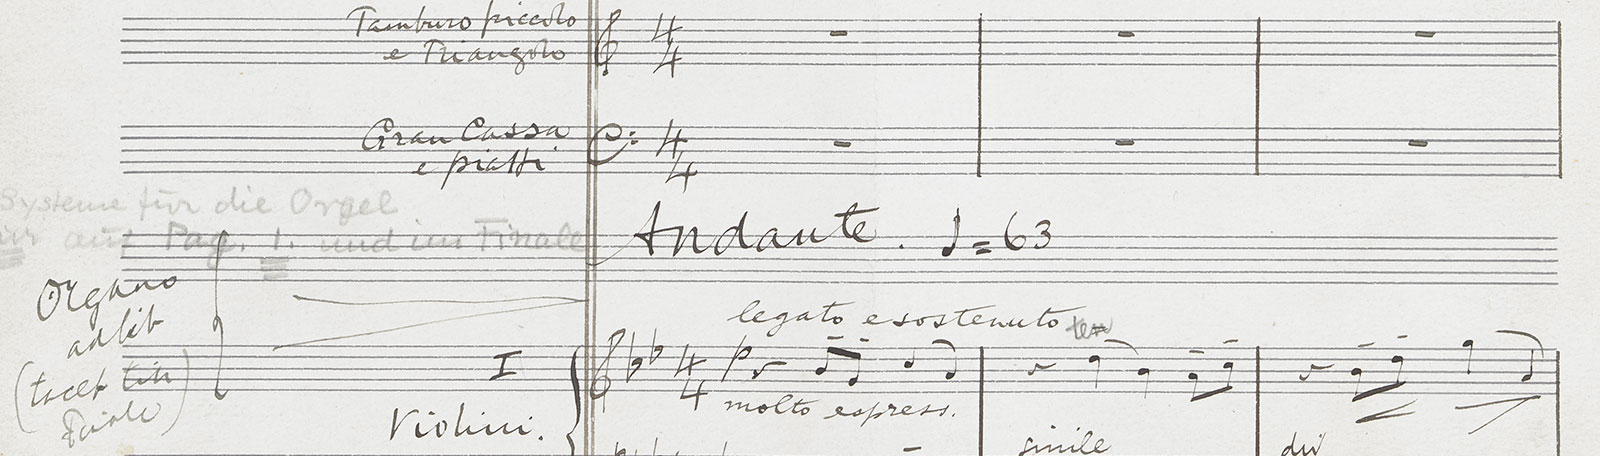 Exploring Elgar's 'Enigma' Variations – The British Library - The